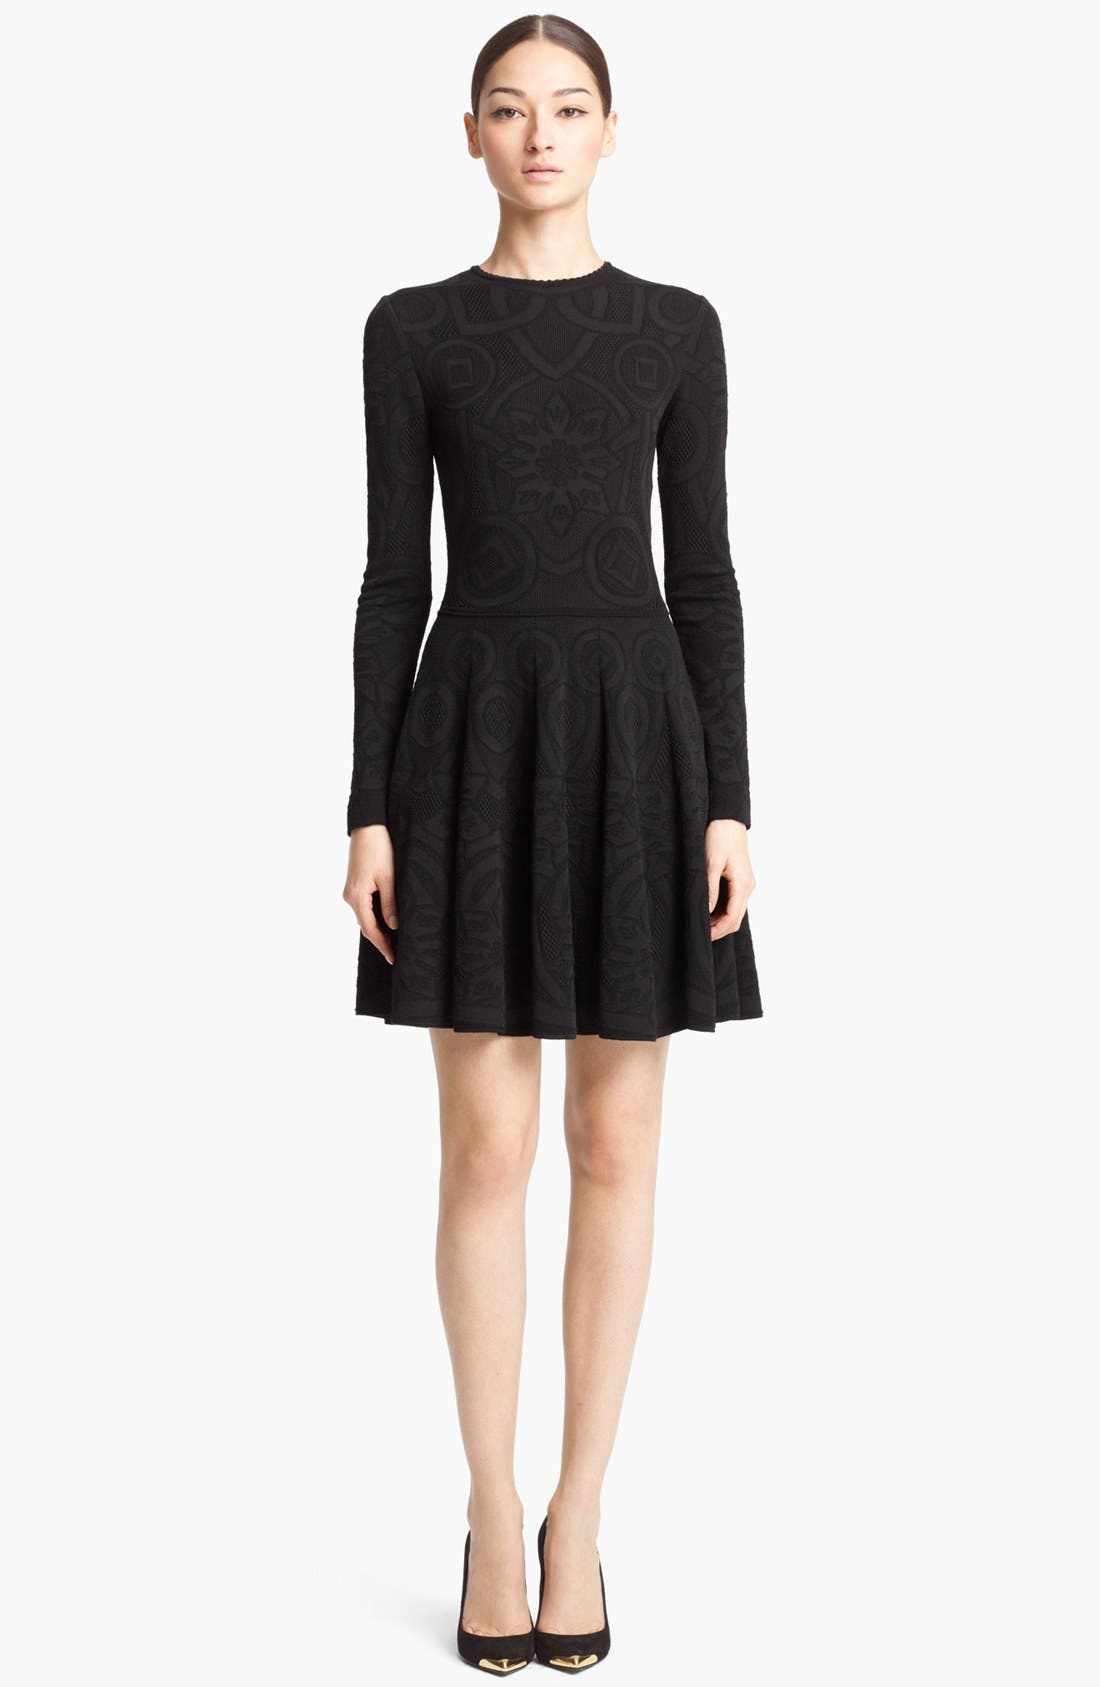 Alternate Image 1 Selected - Alexander McQueen Full Skirt Jacquard Knit Dress